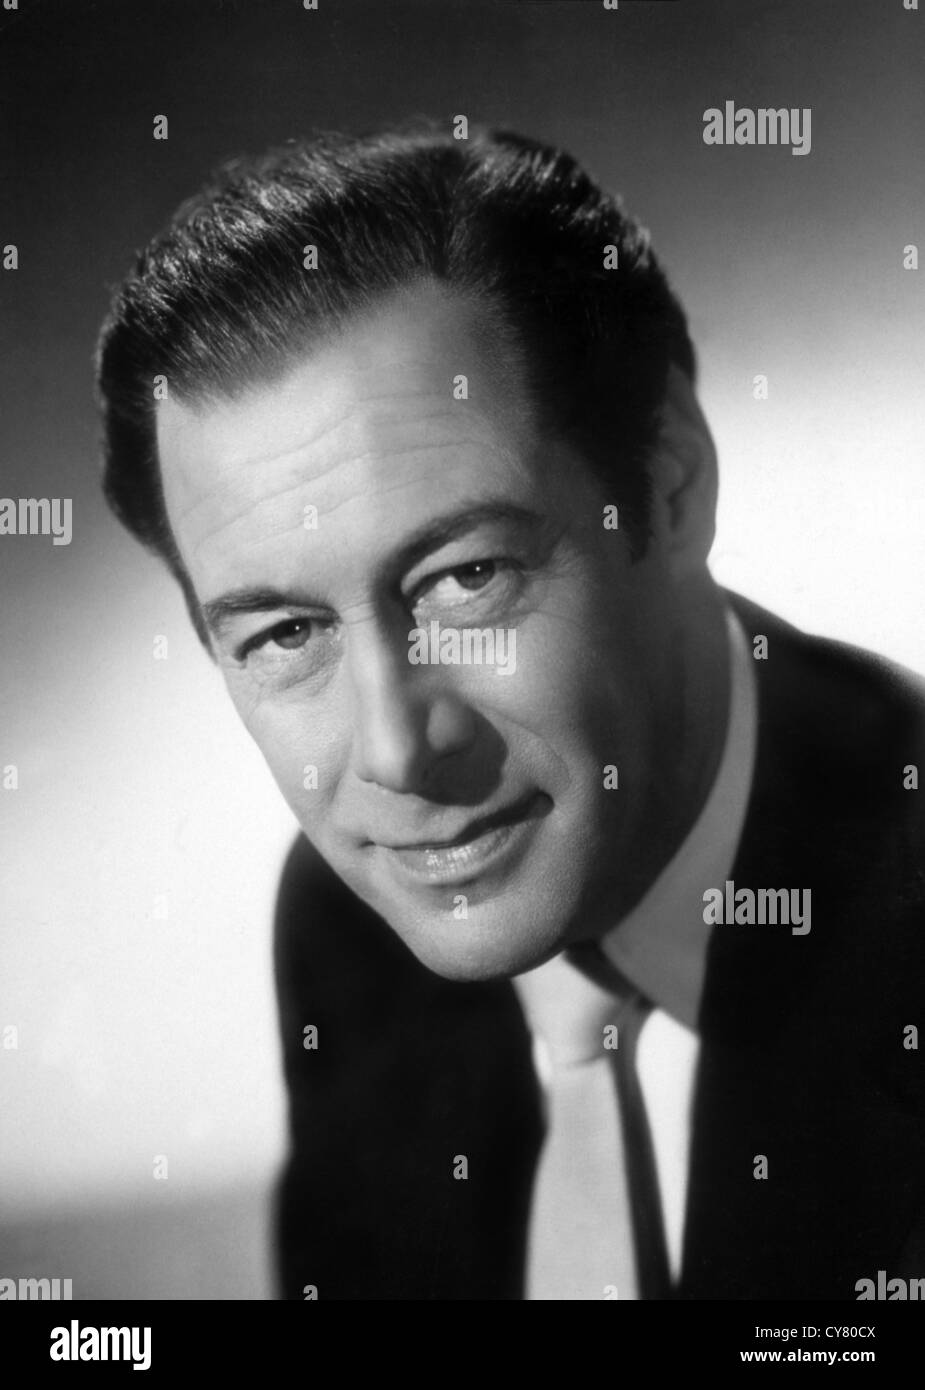 REX HARRISON, SIR (PORTRAIT) RXHS 001 MOVIESTORE COLLECTION LTD - Stock Image